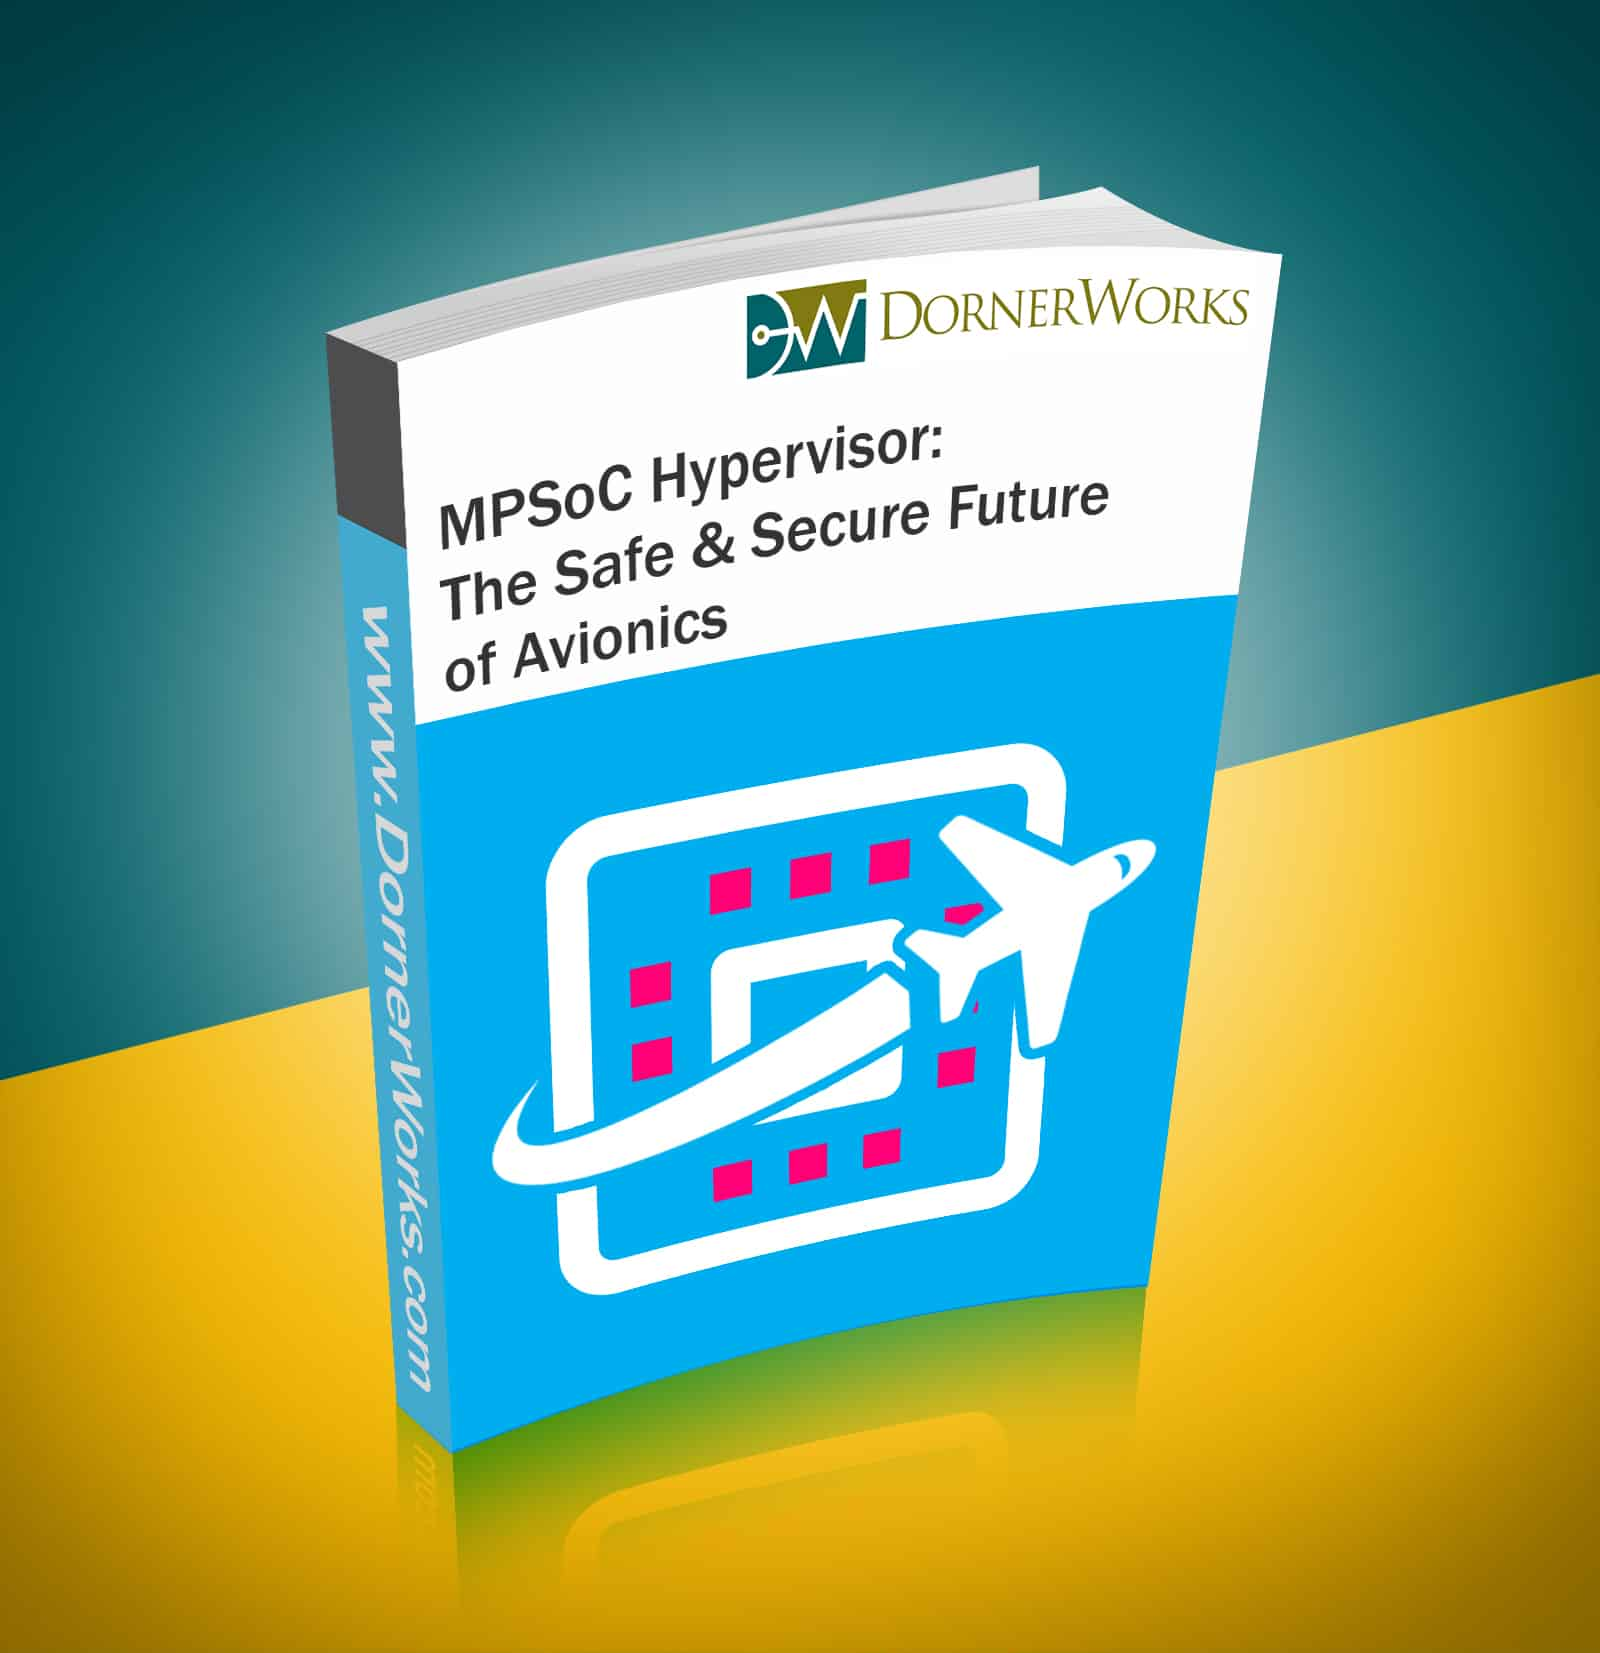 MPSoC Hypervisor: The Safe & Secure Future of Avionics